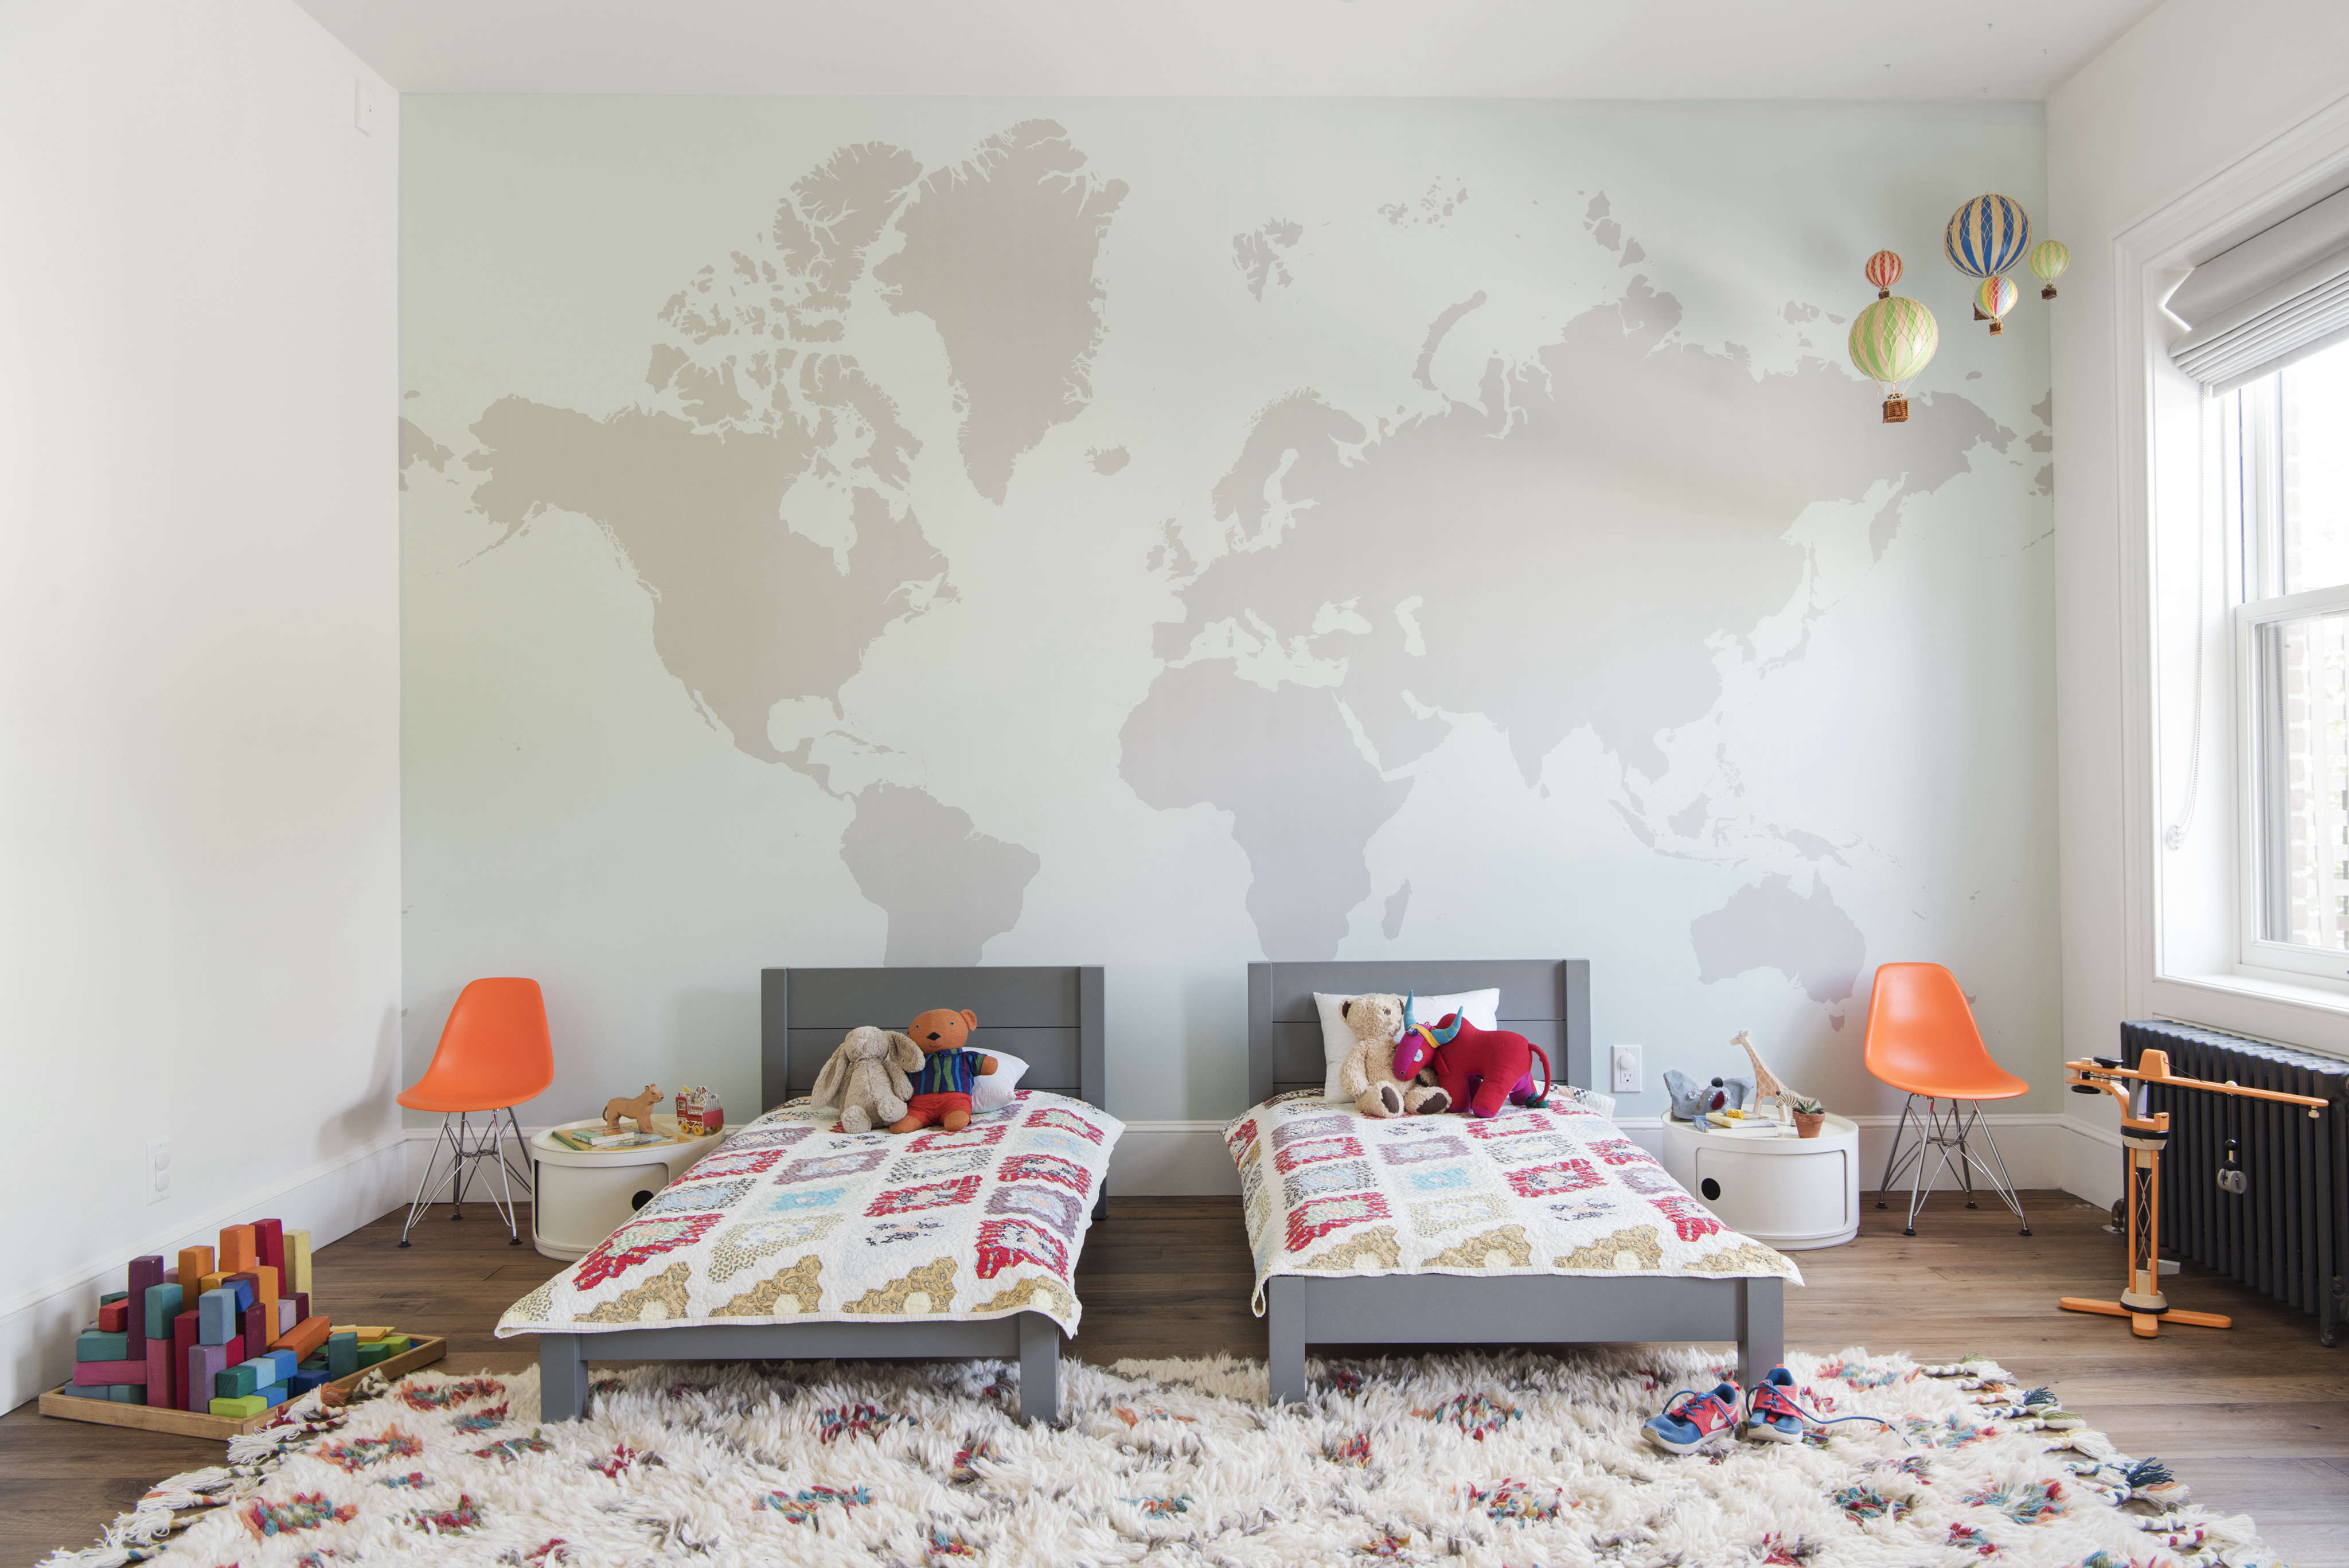 kids-bedroom-with-map-on-wall-twin-beds-elizabeth-roberts